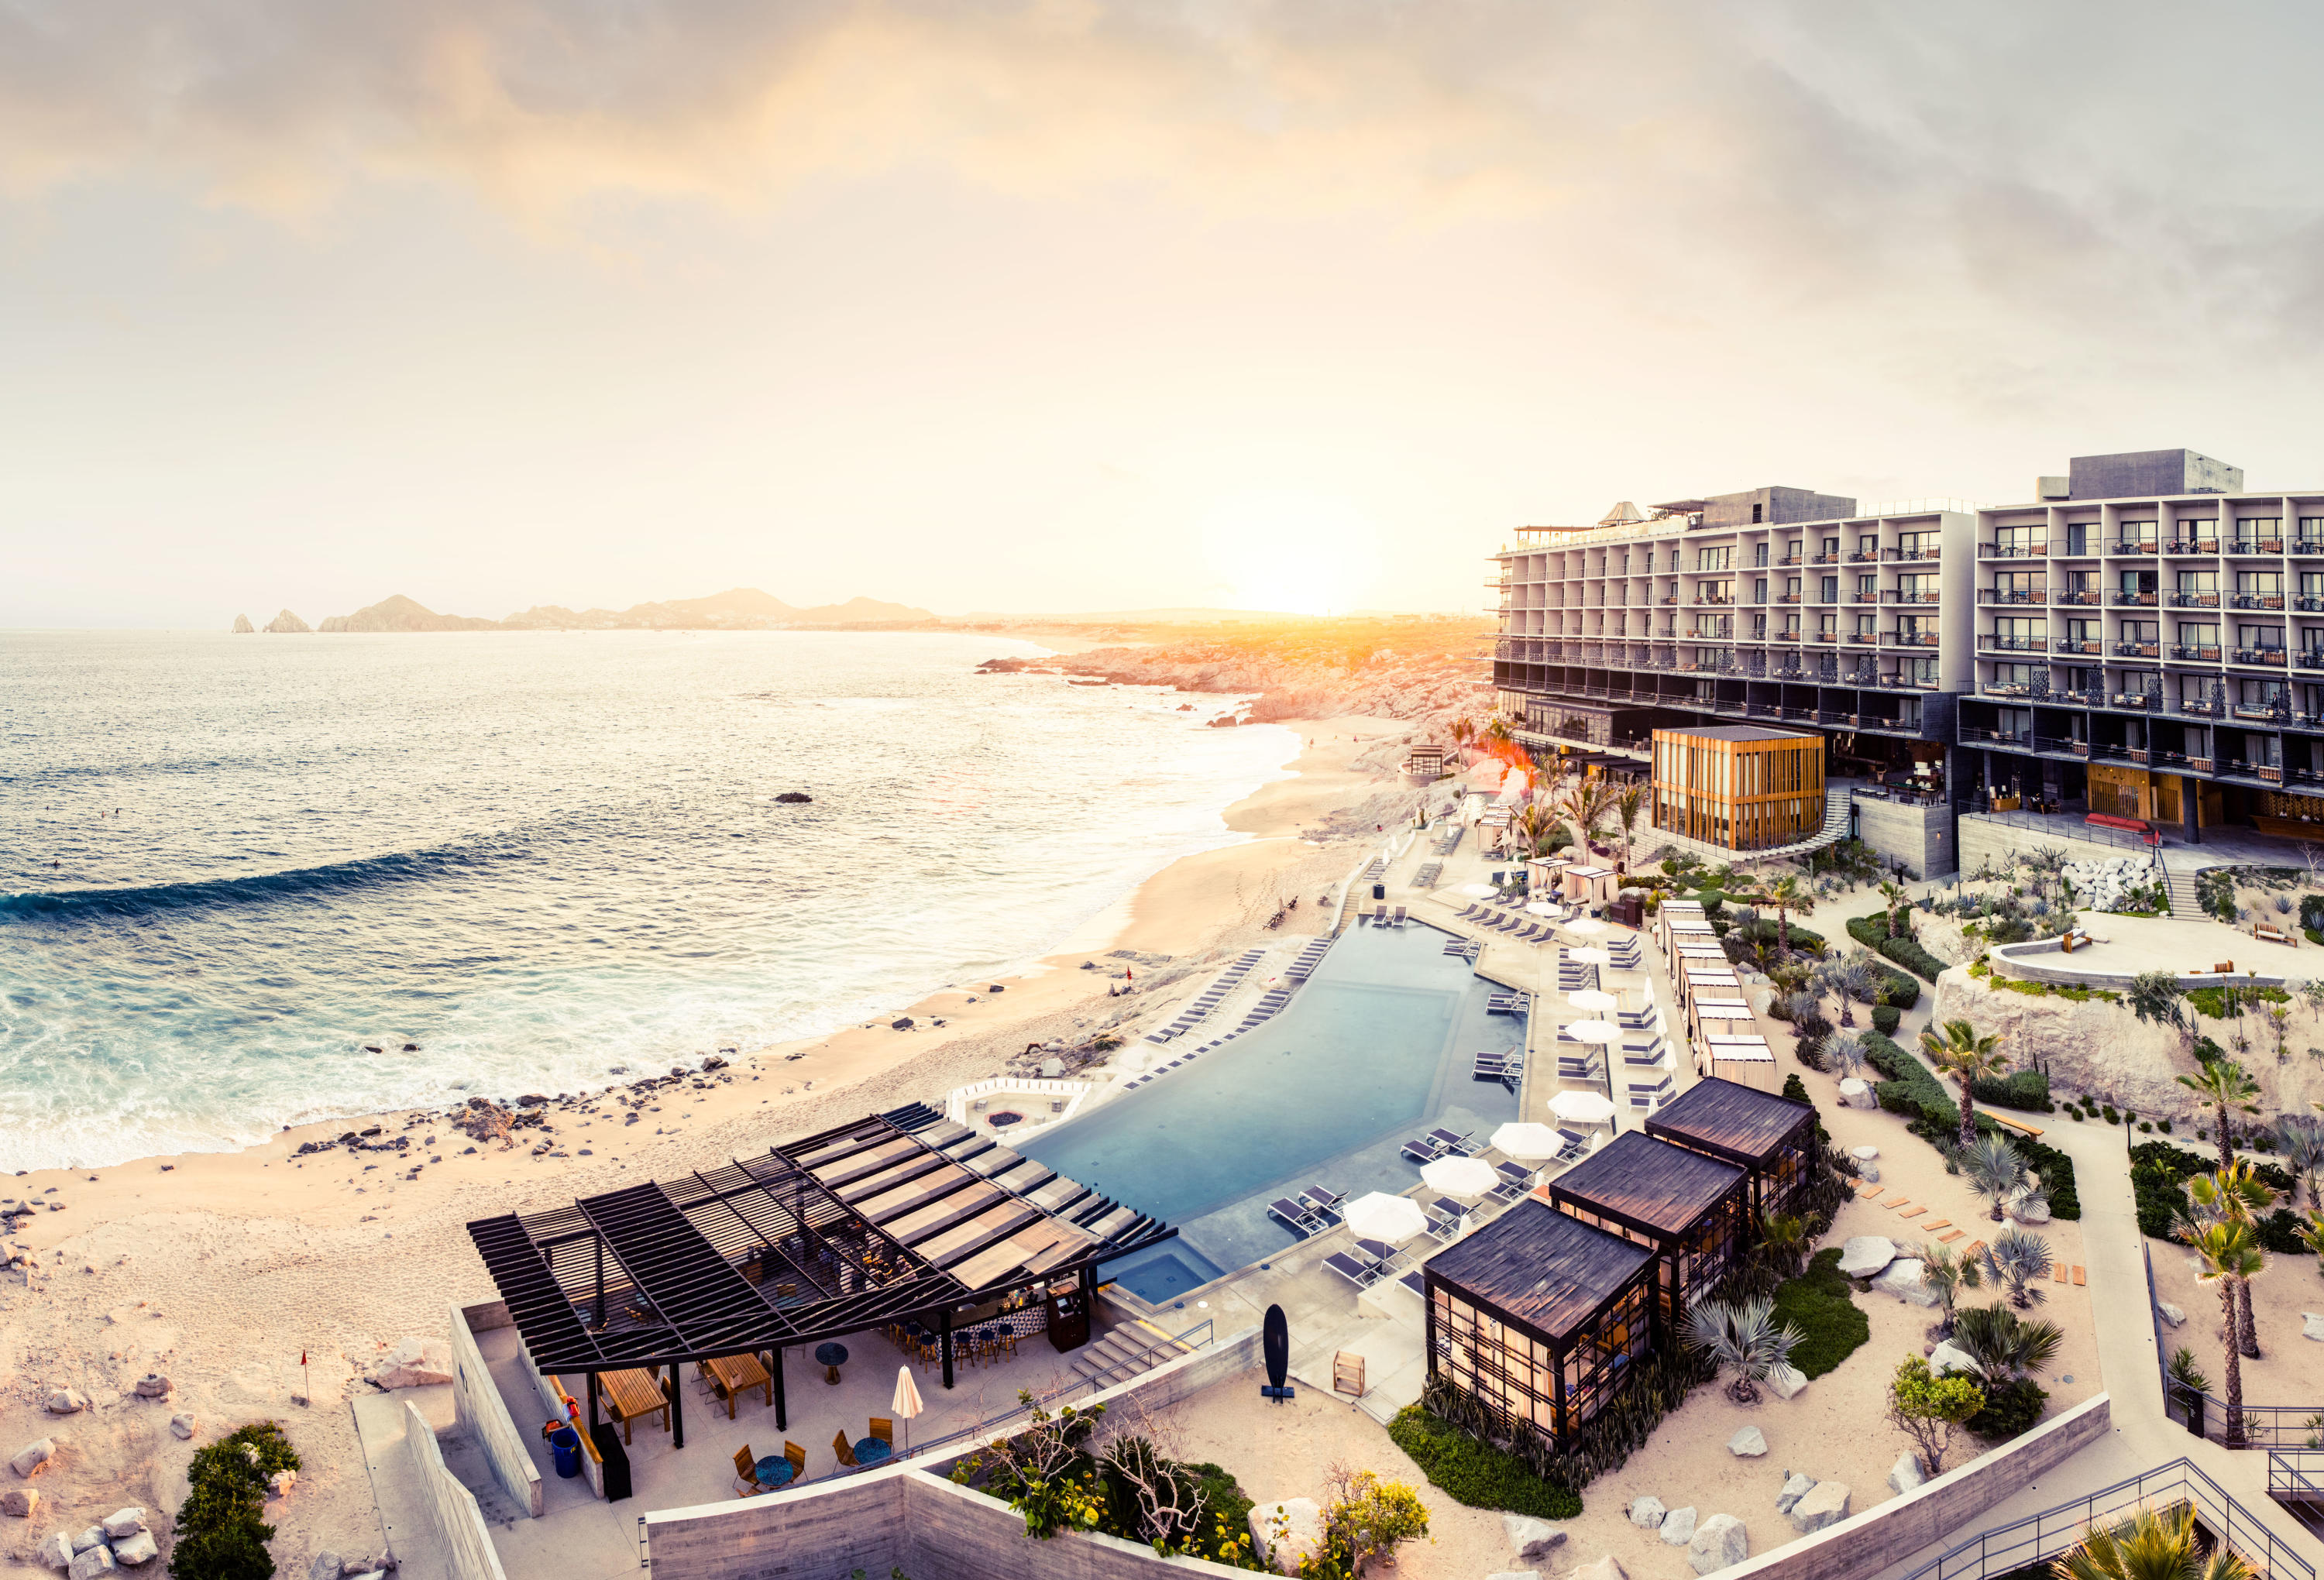 Cabo Corridor, 1 Bedroom Bedrooms, ,1 BathroomBathrooms,Condo,For Sale,The Cape, a Thompson Hotel,19-1462